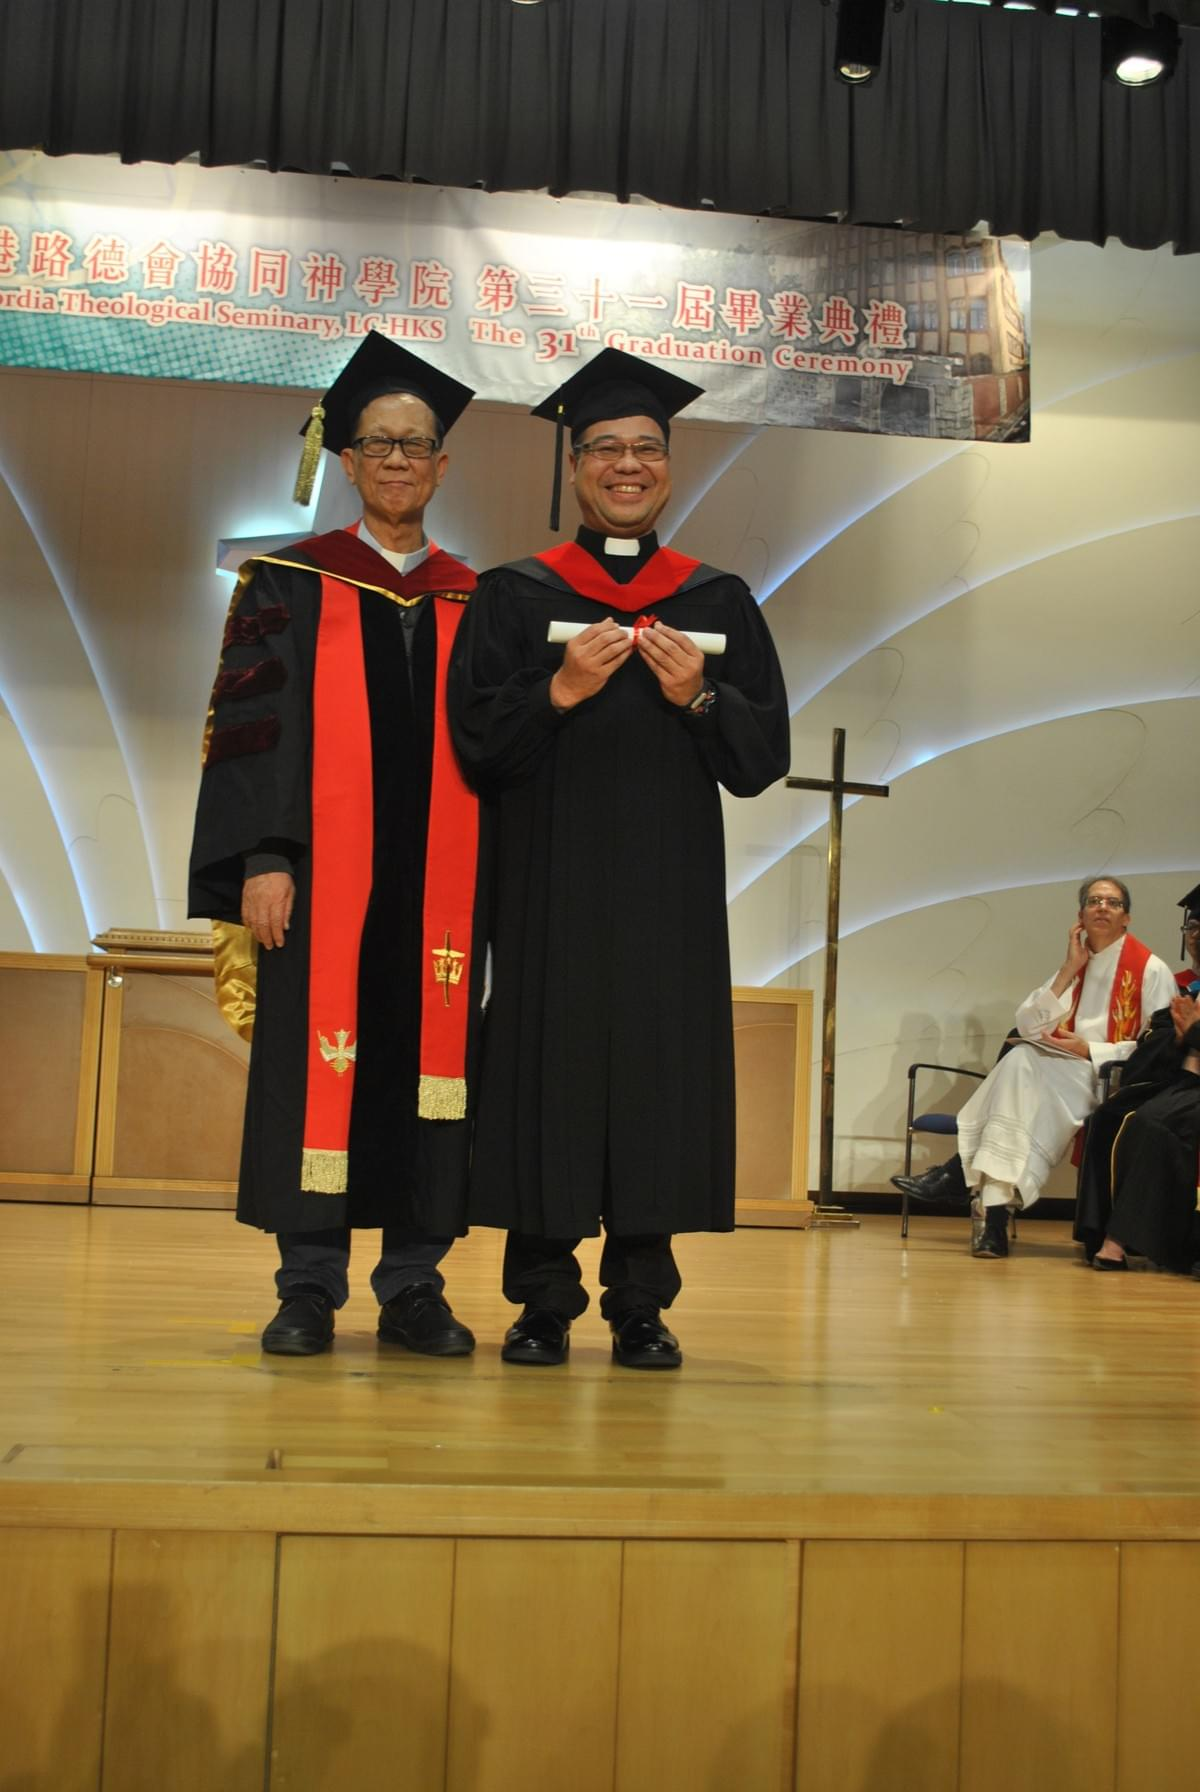 Dr. IP and Rev. LAU Siu Ming [MTS]